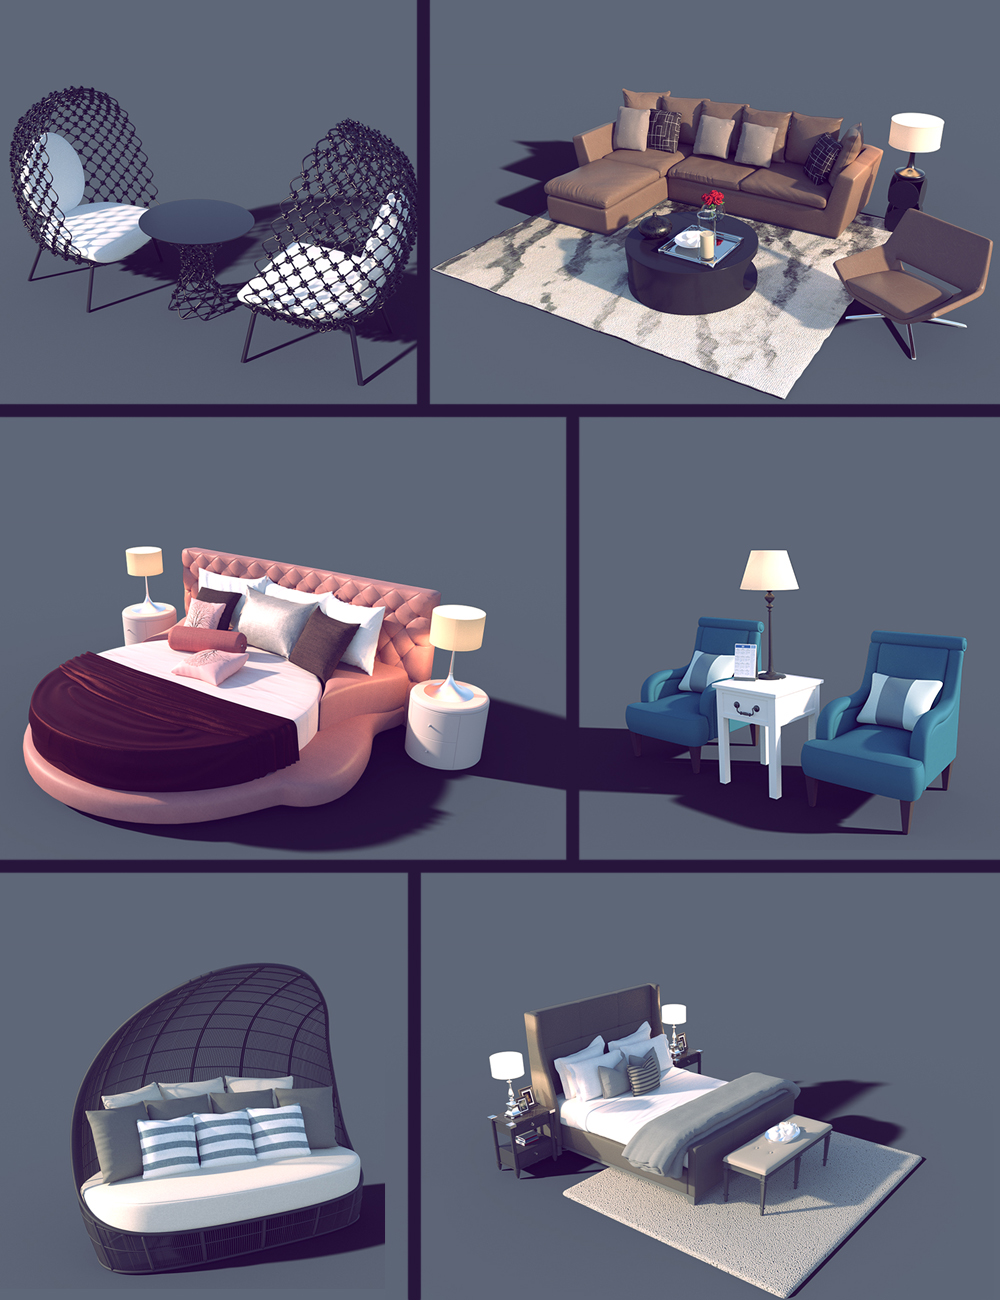 Interior Furniture 01 by: Polish, 3D Models by Daz 3D